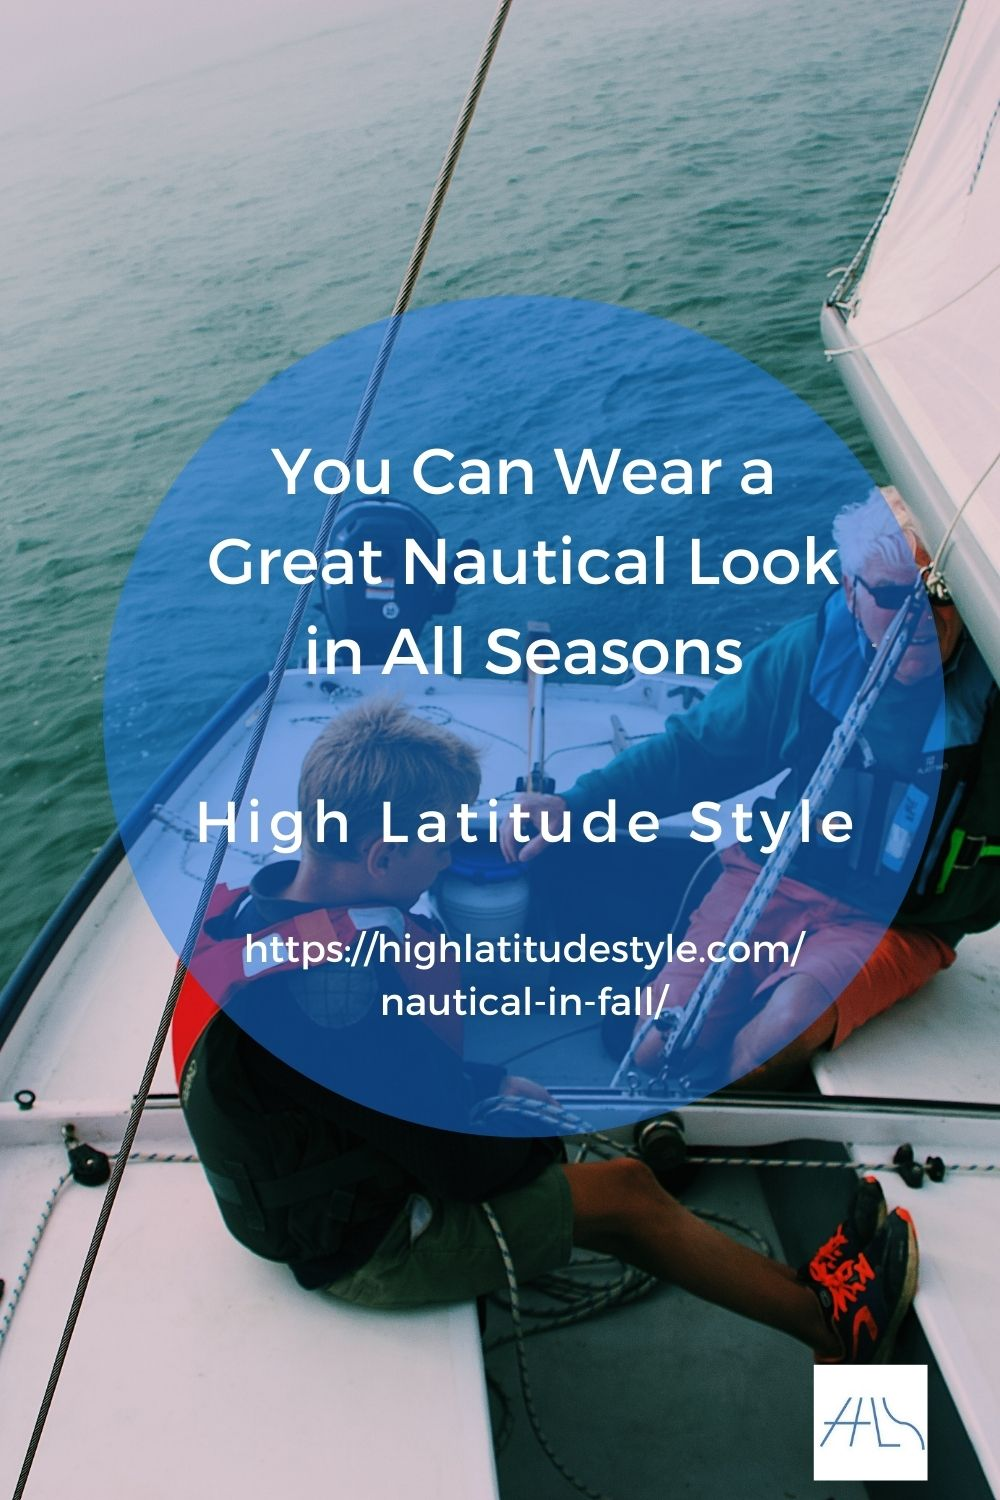 You Can Wear a Great Nautical Look in All Seasons